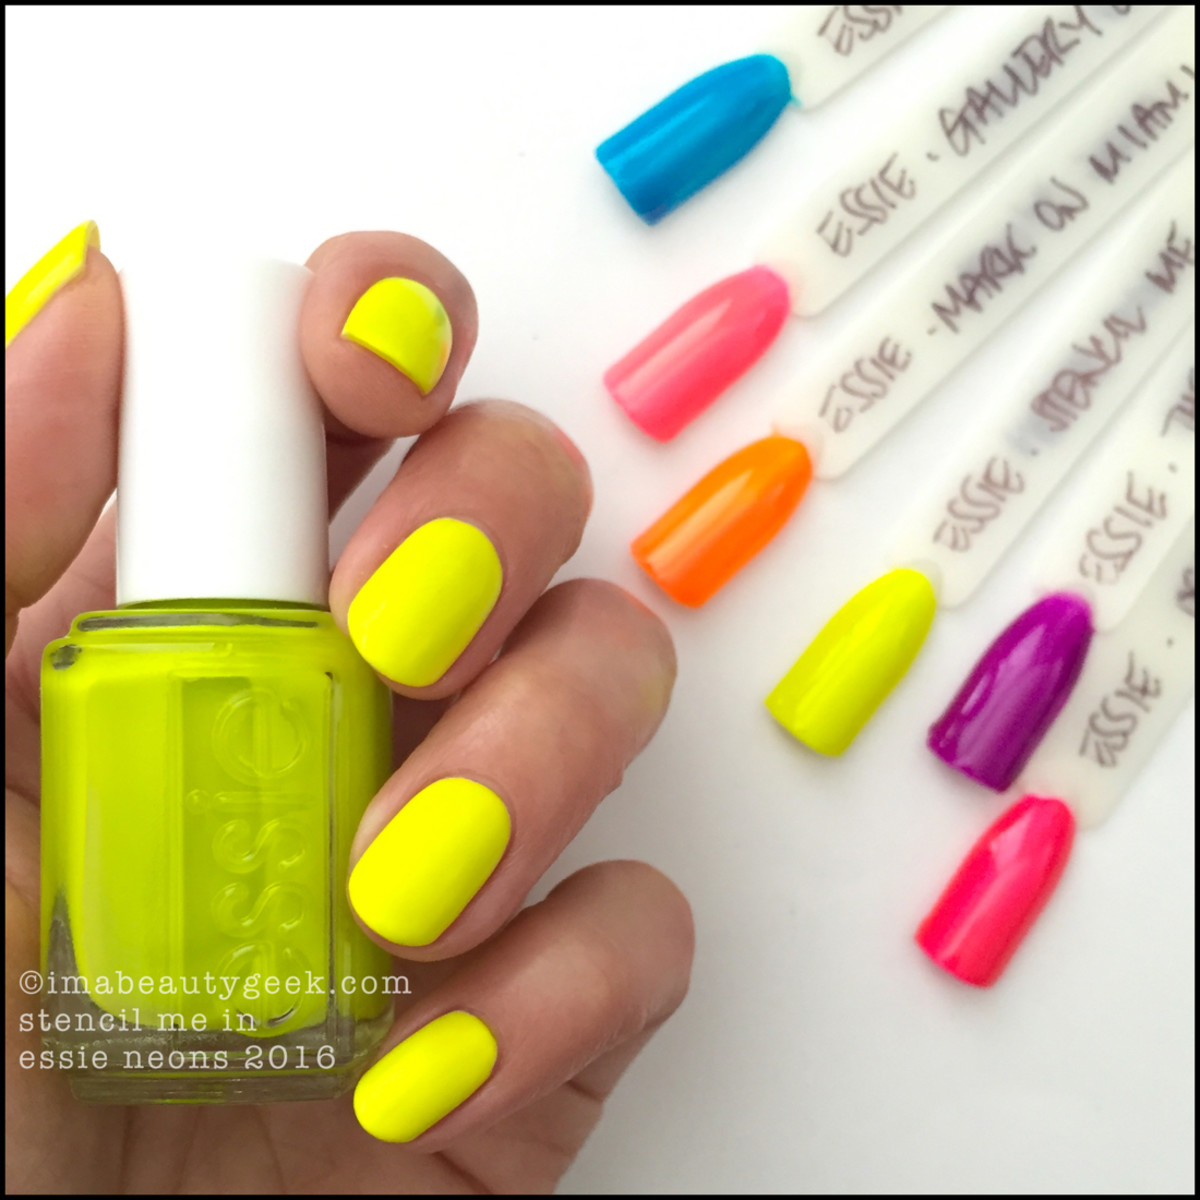 Essie Stencil Me In_Essie Neons 2016 Collection Swatches Review